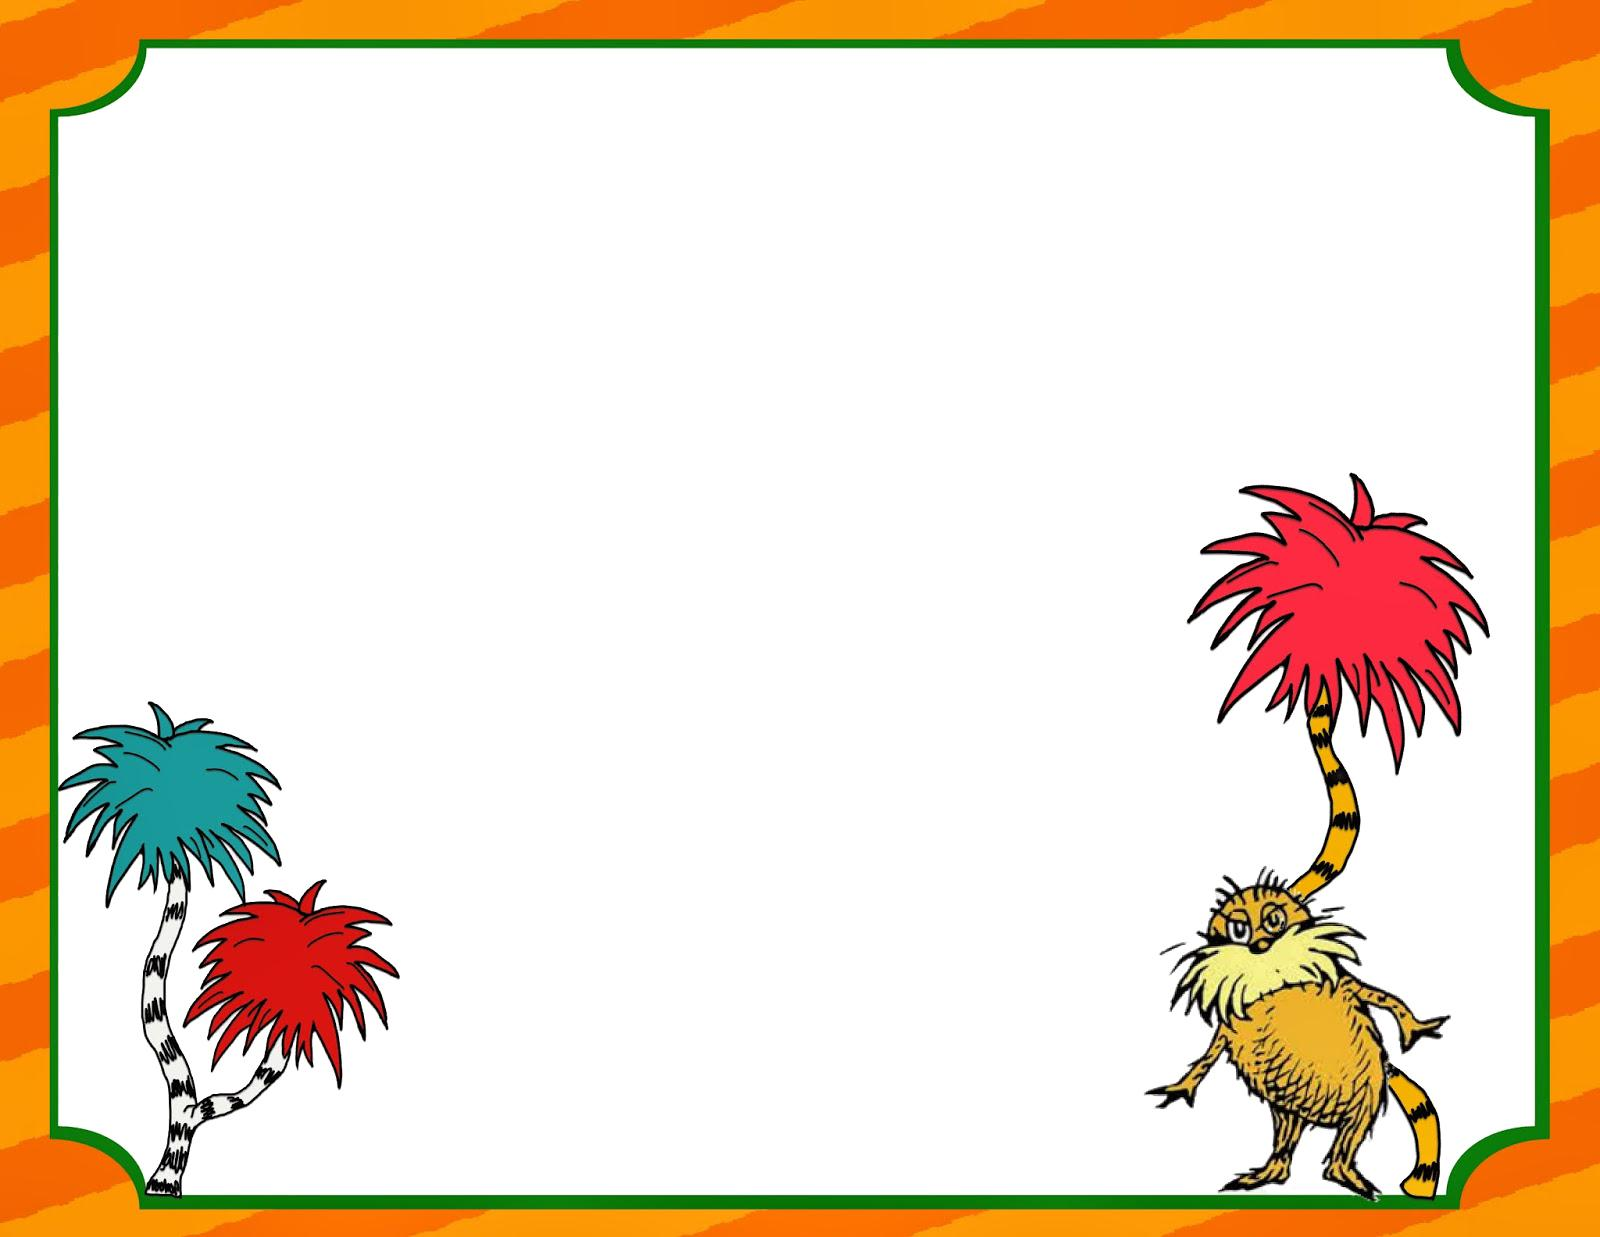 Dr seuss background clipart graphic royalty free Dr Seuss Borders Writing Papers Primary Grades graphic royalty free